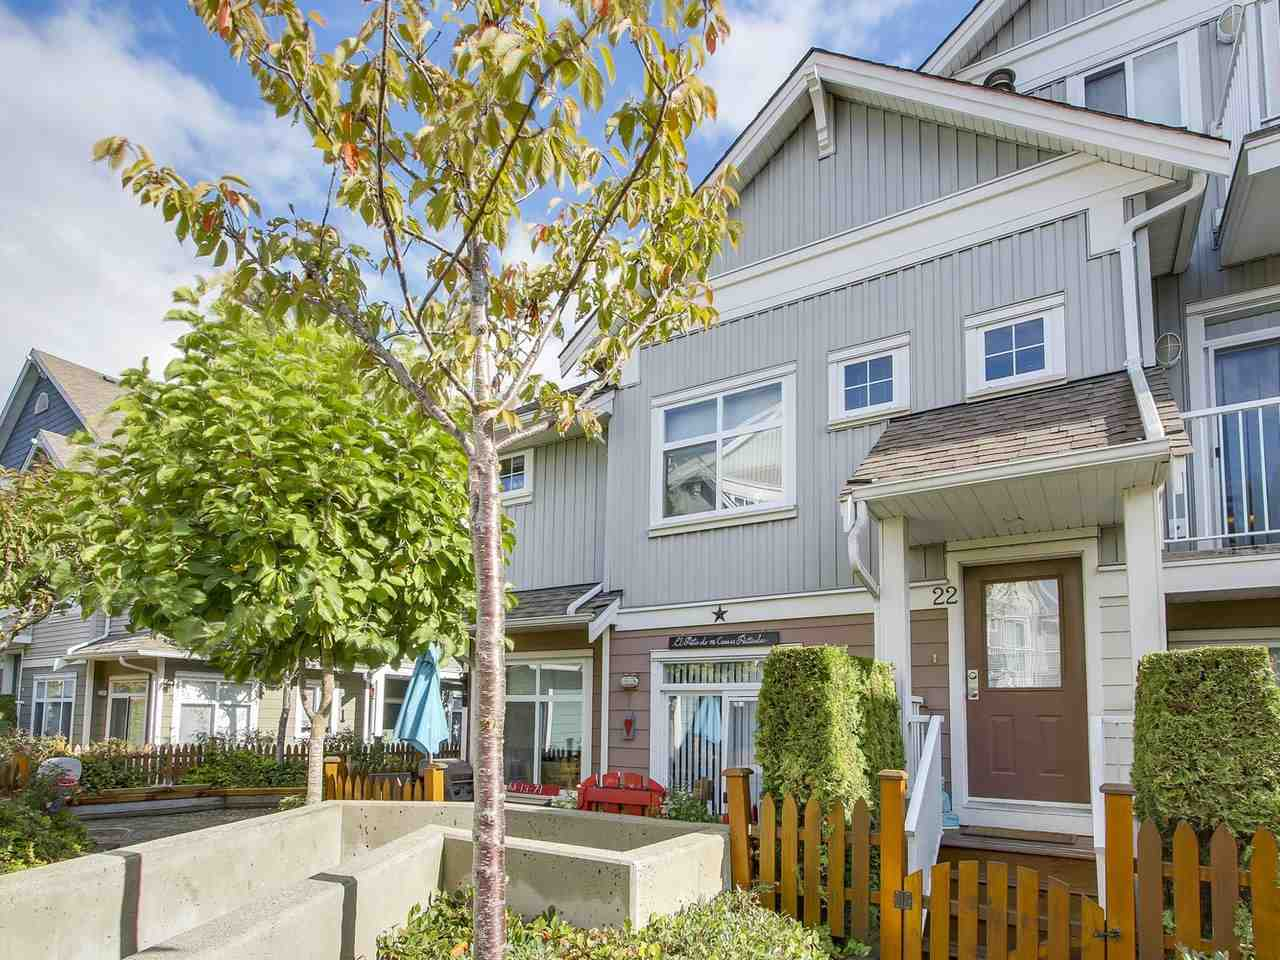 "Main Photo: 22 6300 LONDON Road in Richmond: Steveston South Townhouse for sale in ""MCKINNEY CROSSING"" : MLS® # R2213489"